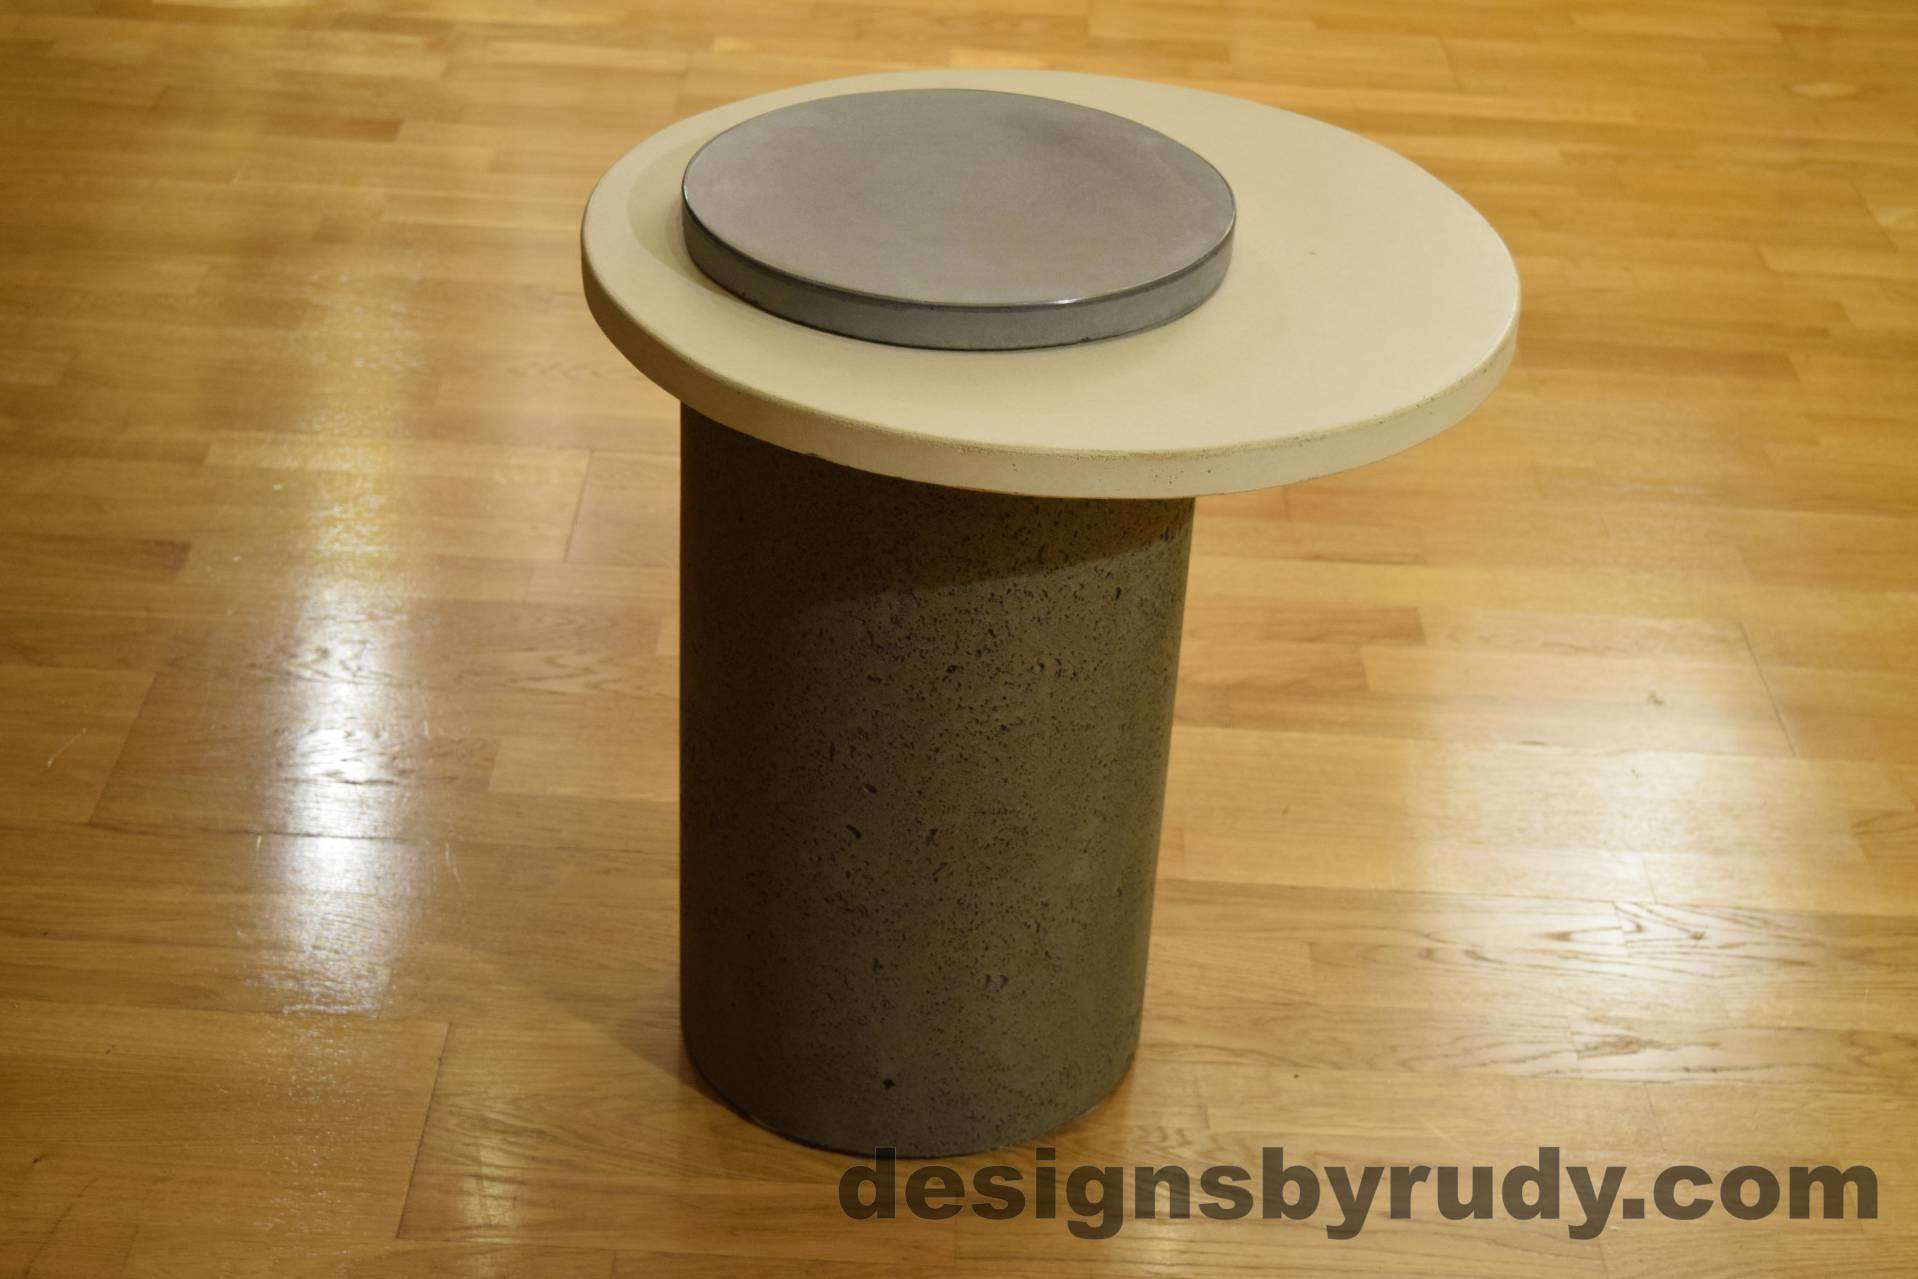 Gray Concrete Side Table, White Top and Gray Cap, Pillars model, Designs by Rudy L